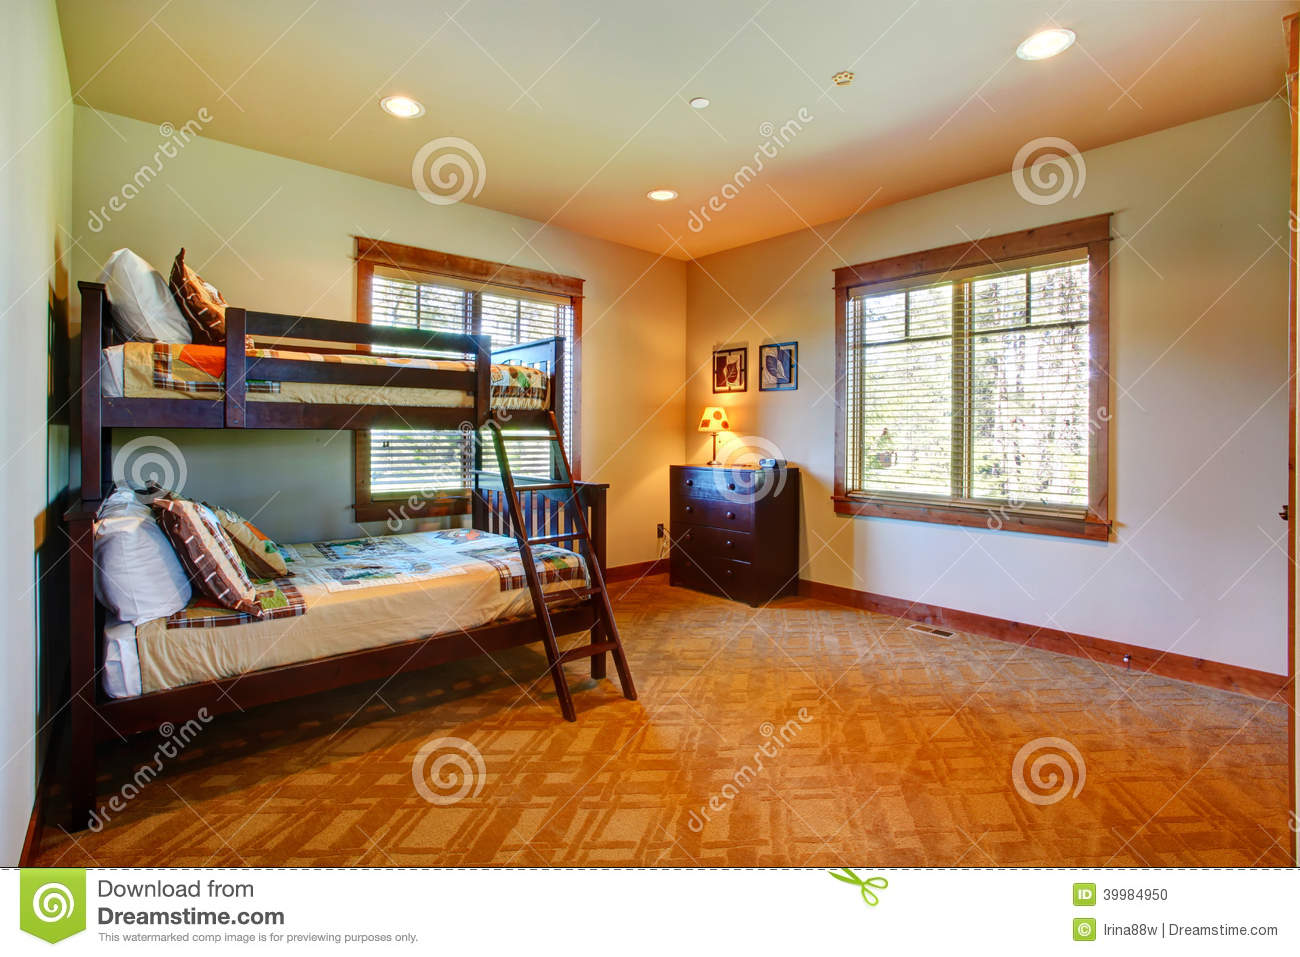 Kids Room With Two Level Bed Stock Photo Image 39984950